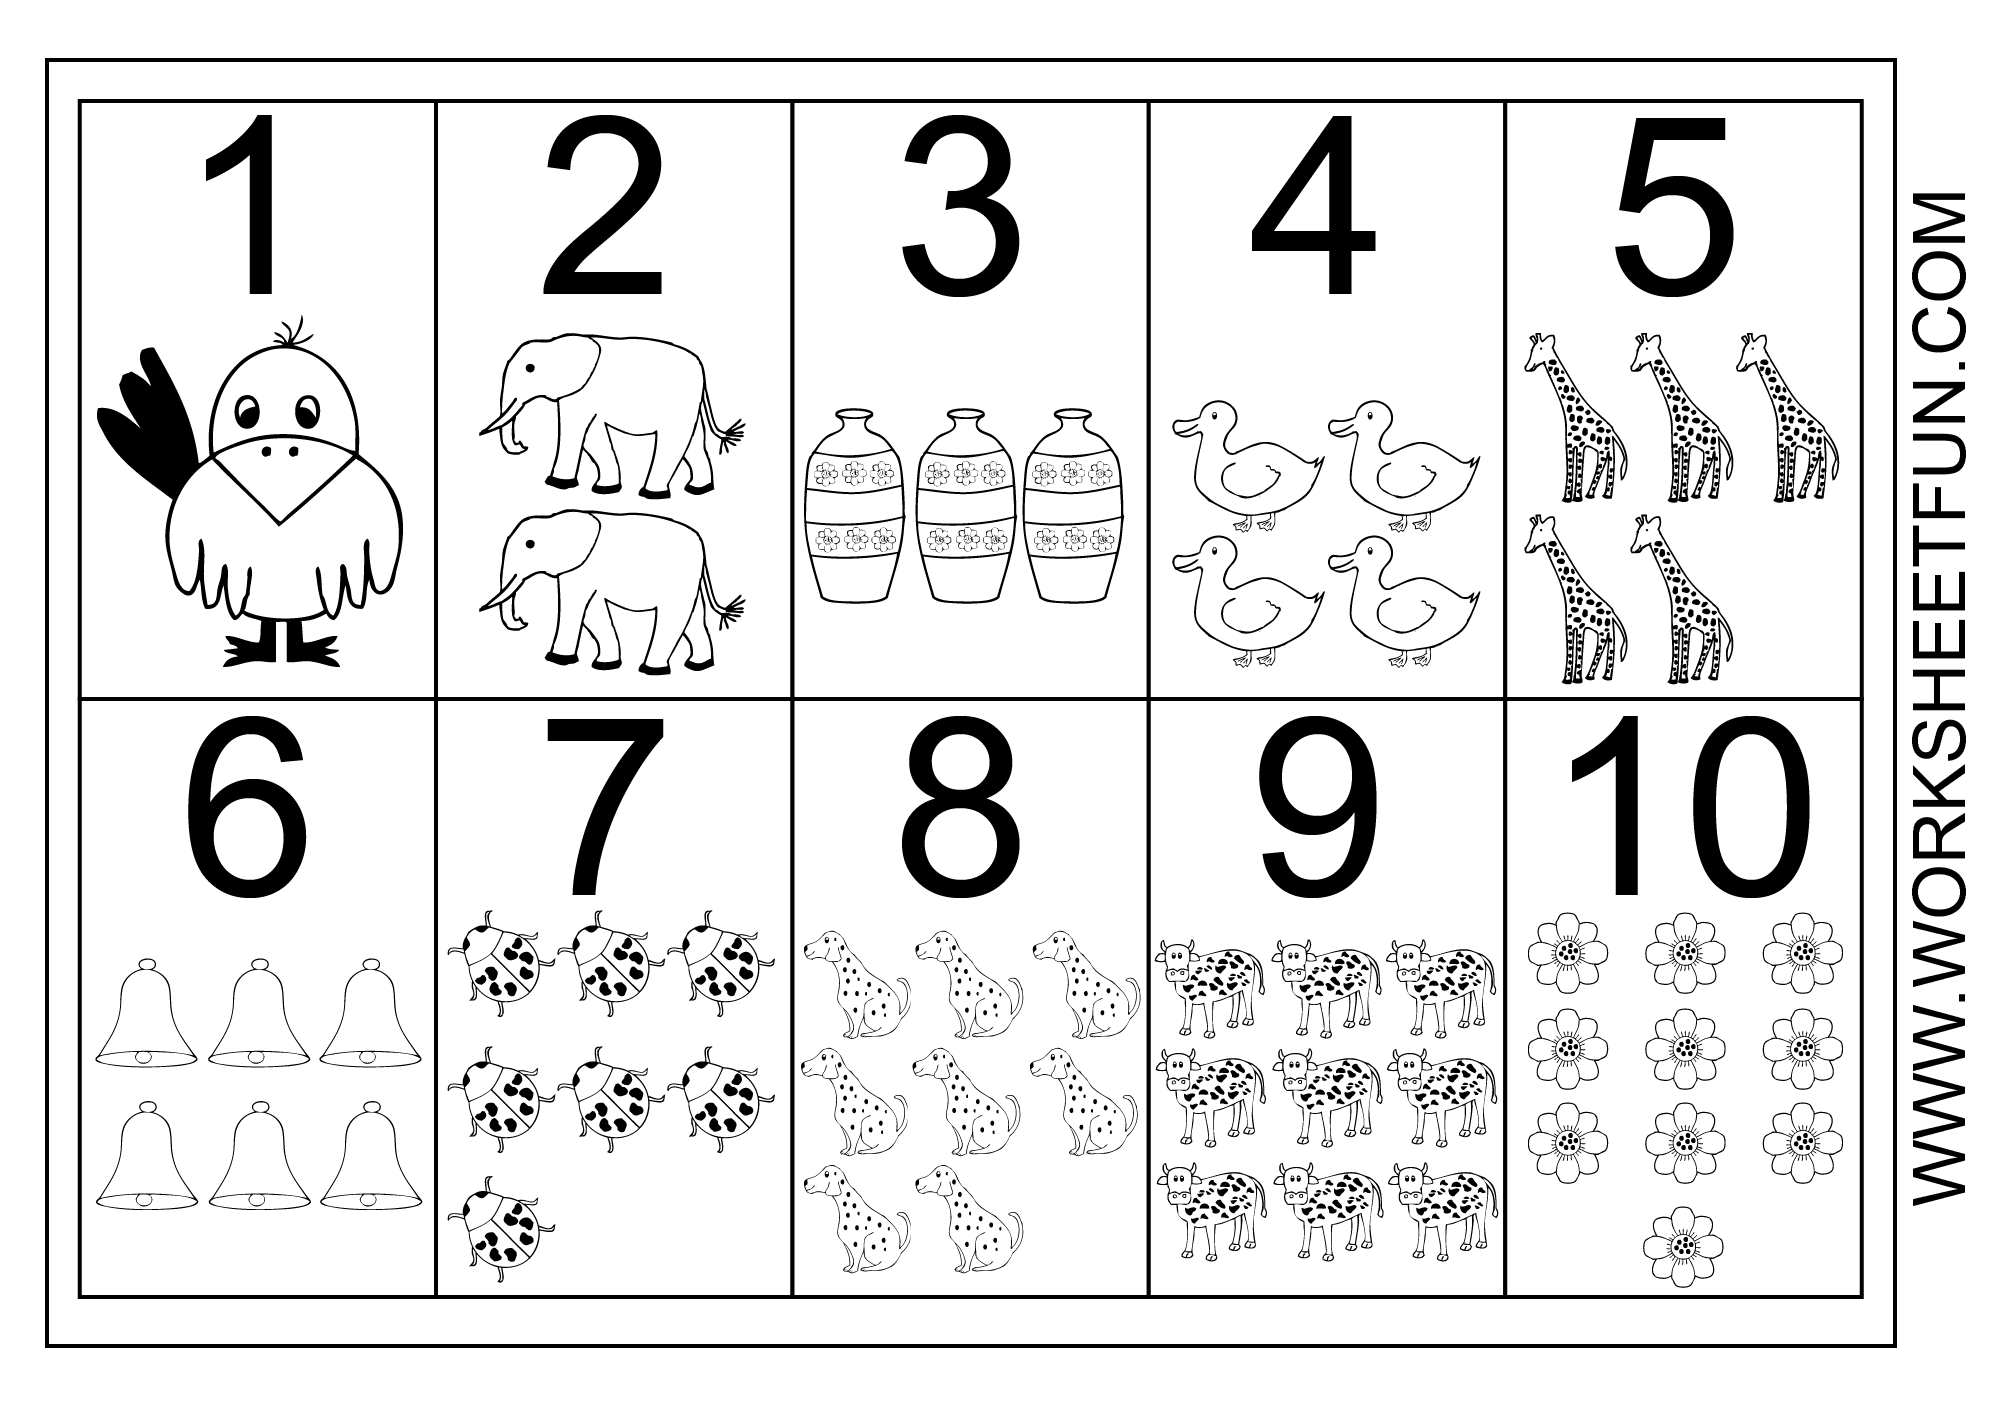 Picture Number Chart 1-10 | Math (preschool/toddler) | Pinterest ...